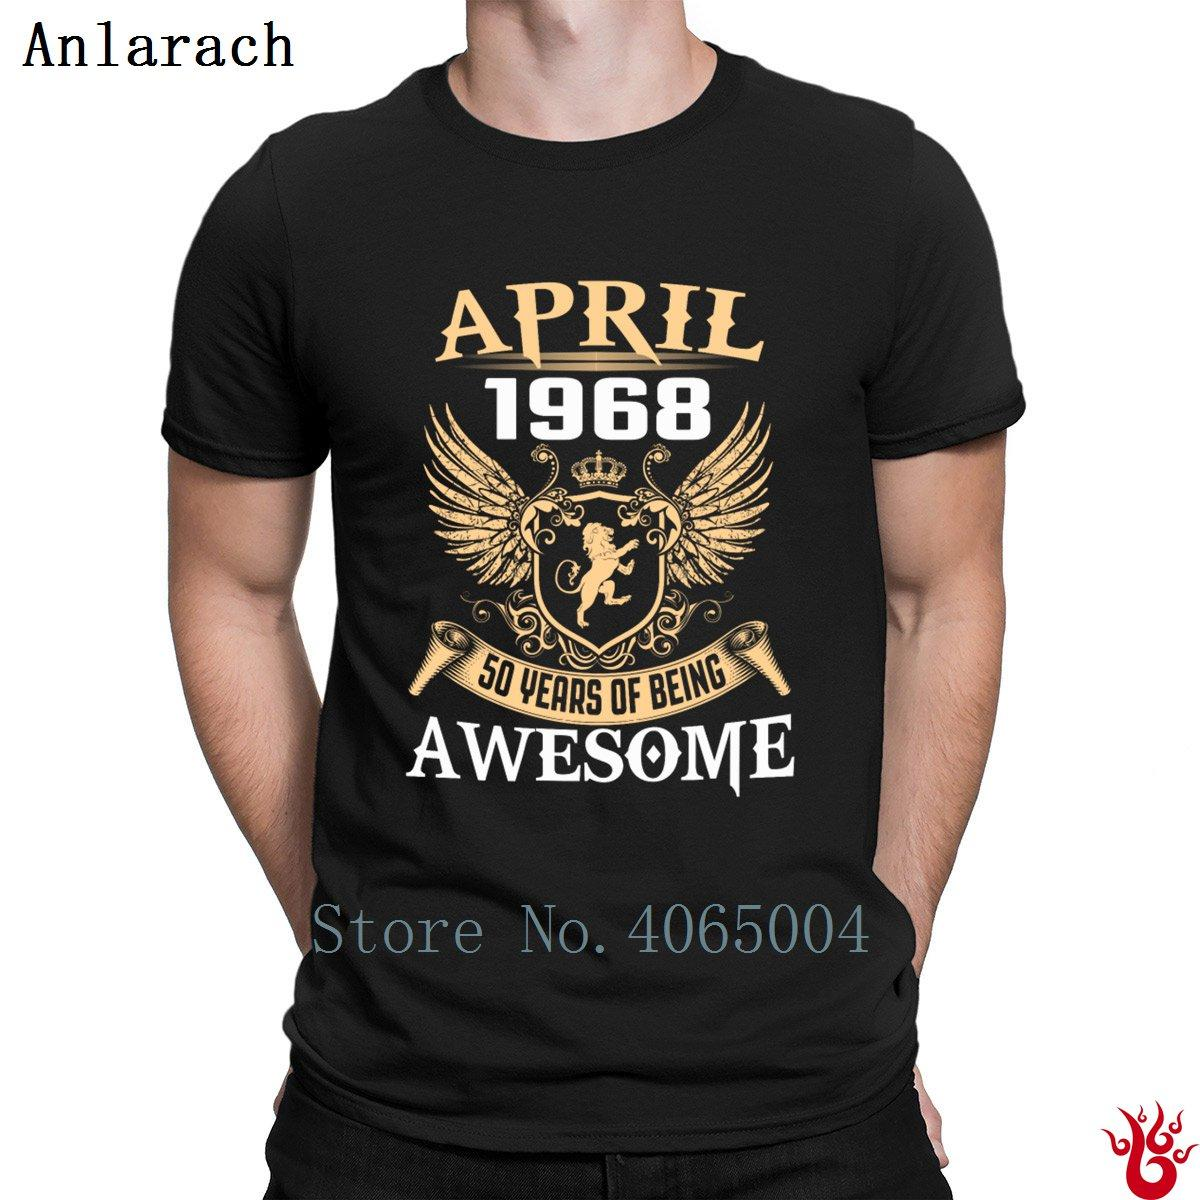 April 1968 50 Jahre Being Awesome T-Shirts Graphic HipHop Top T-Shirt Männer Sommer Kurzarm Normal Authentic Basic Solid